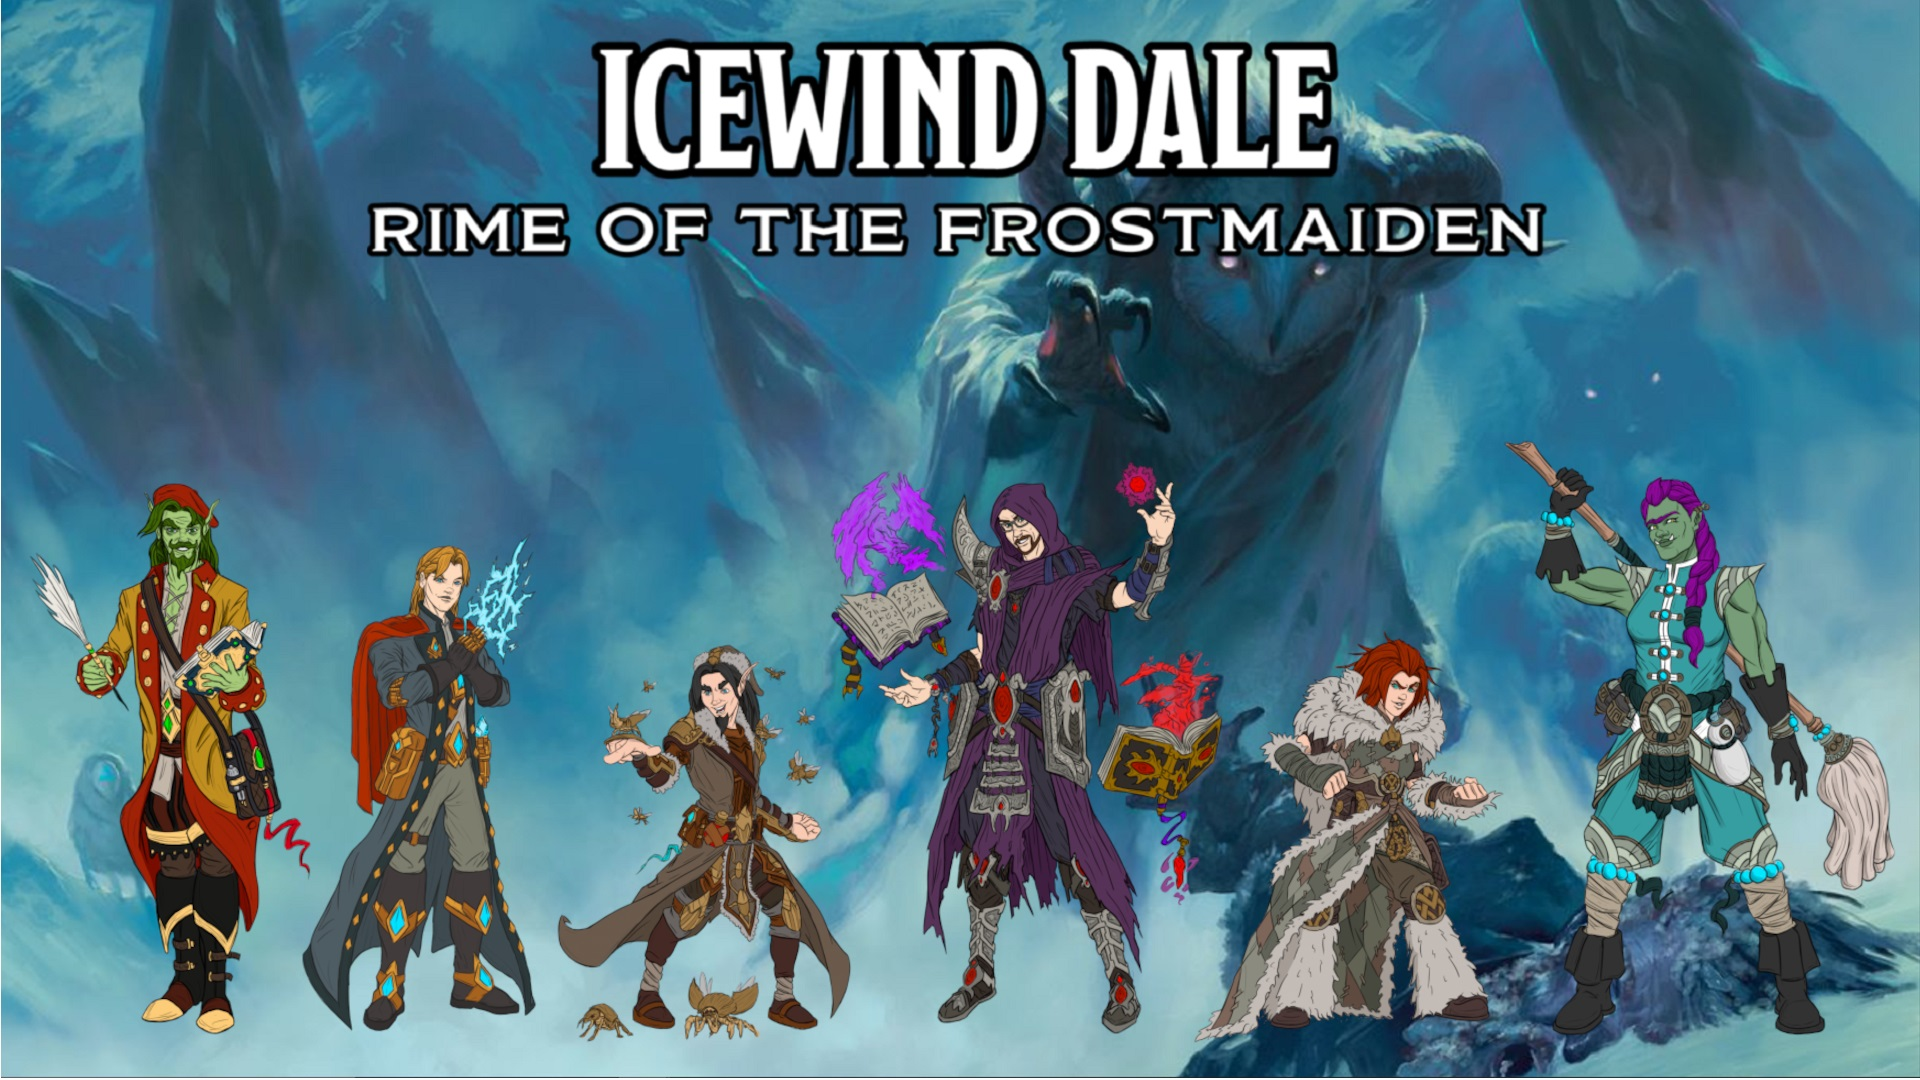 Icewind dale cover pic with PCs jpg